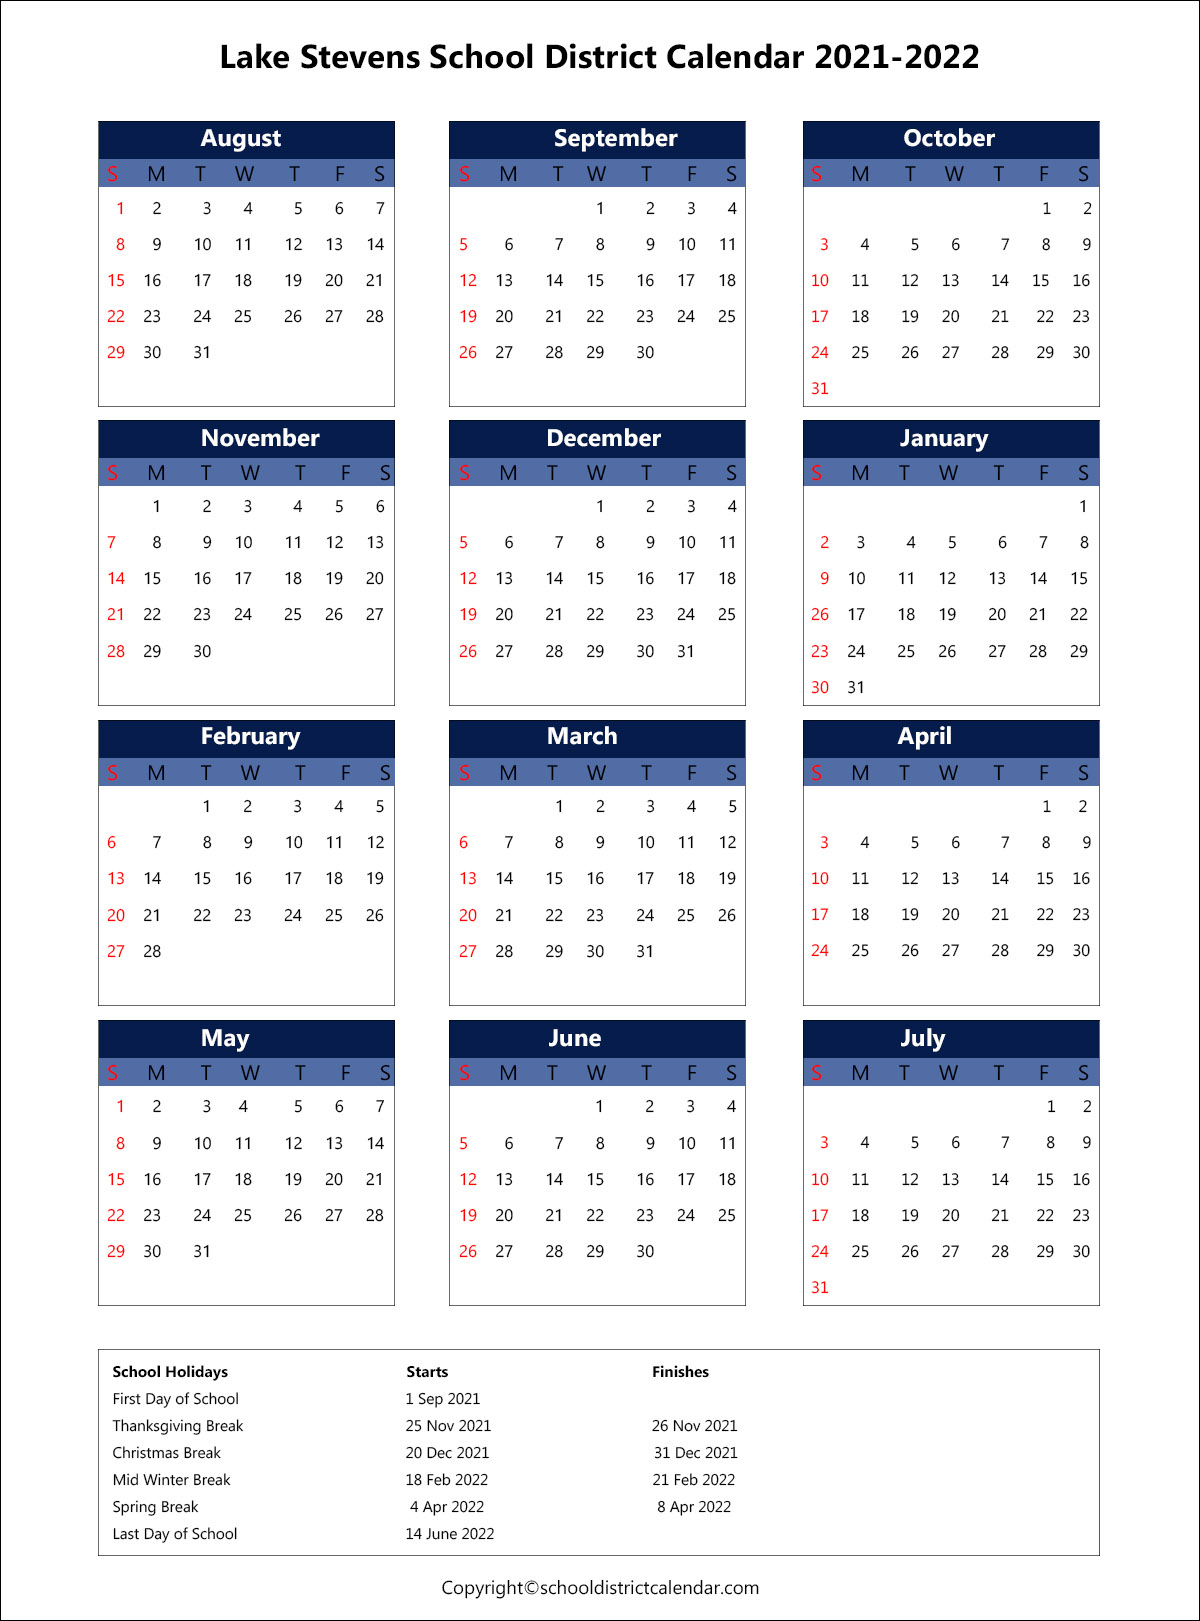 Lake Stevens School District Calendar 2021